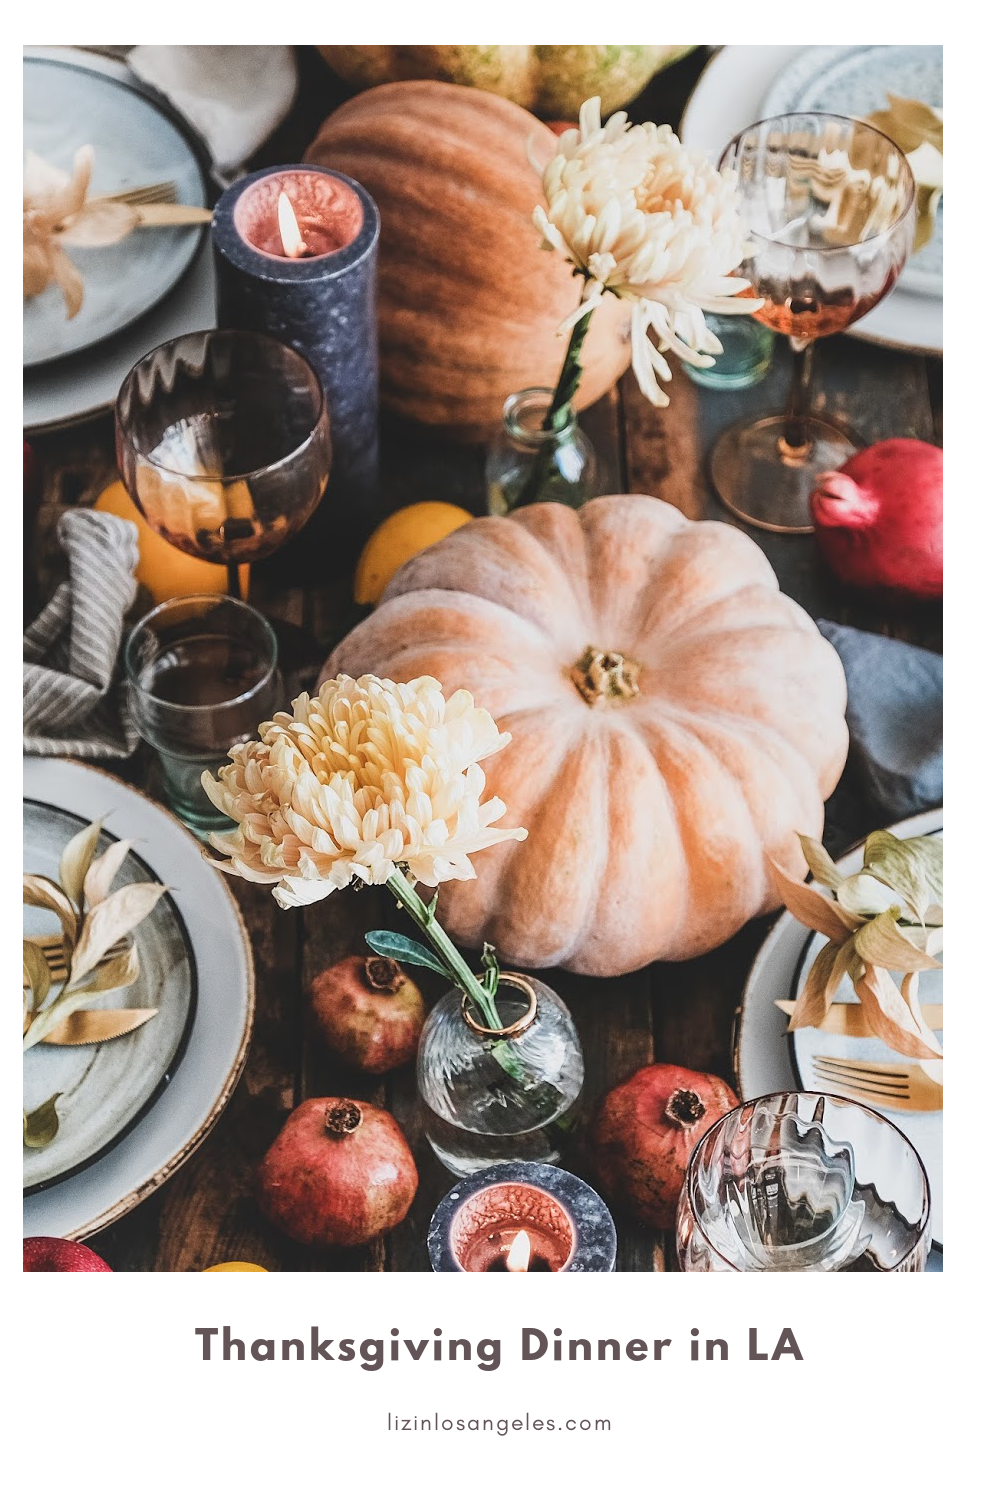 Thanksgiving Dinner in LA: 5 Places to Dine, a blog post by Liz in Los Angeles, Los Angeles lifestyle blogger: an image of Thanksgiving dinner